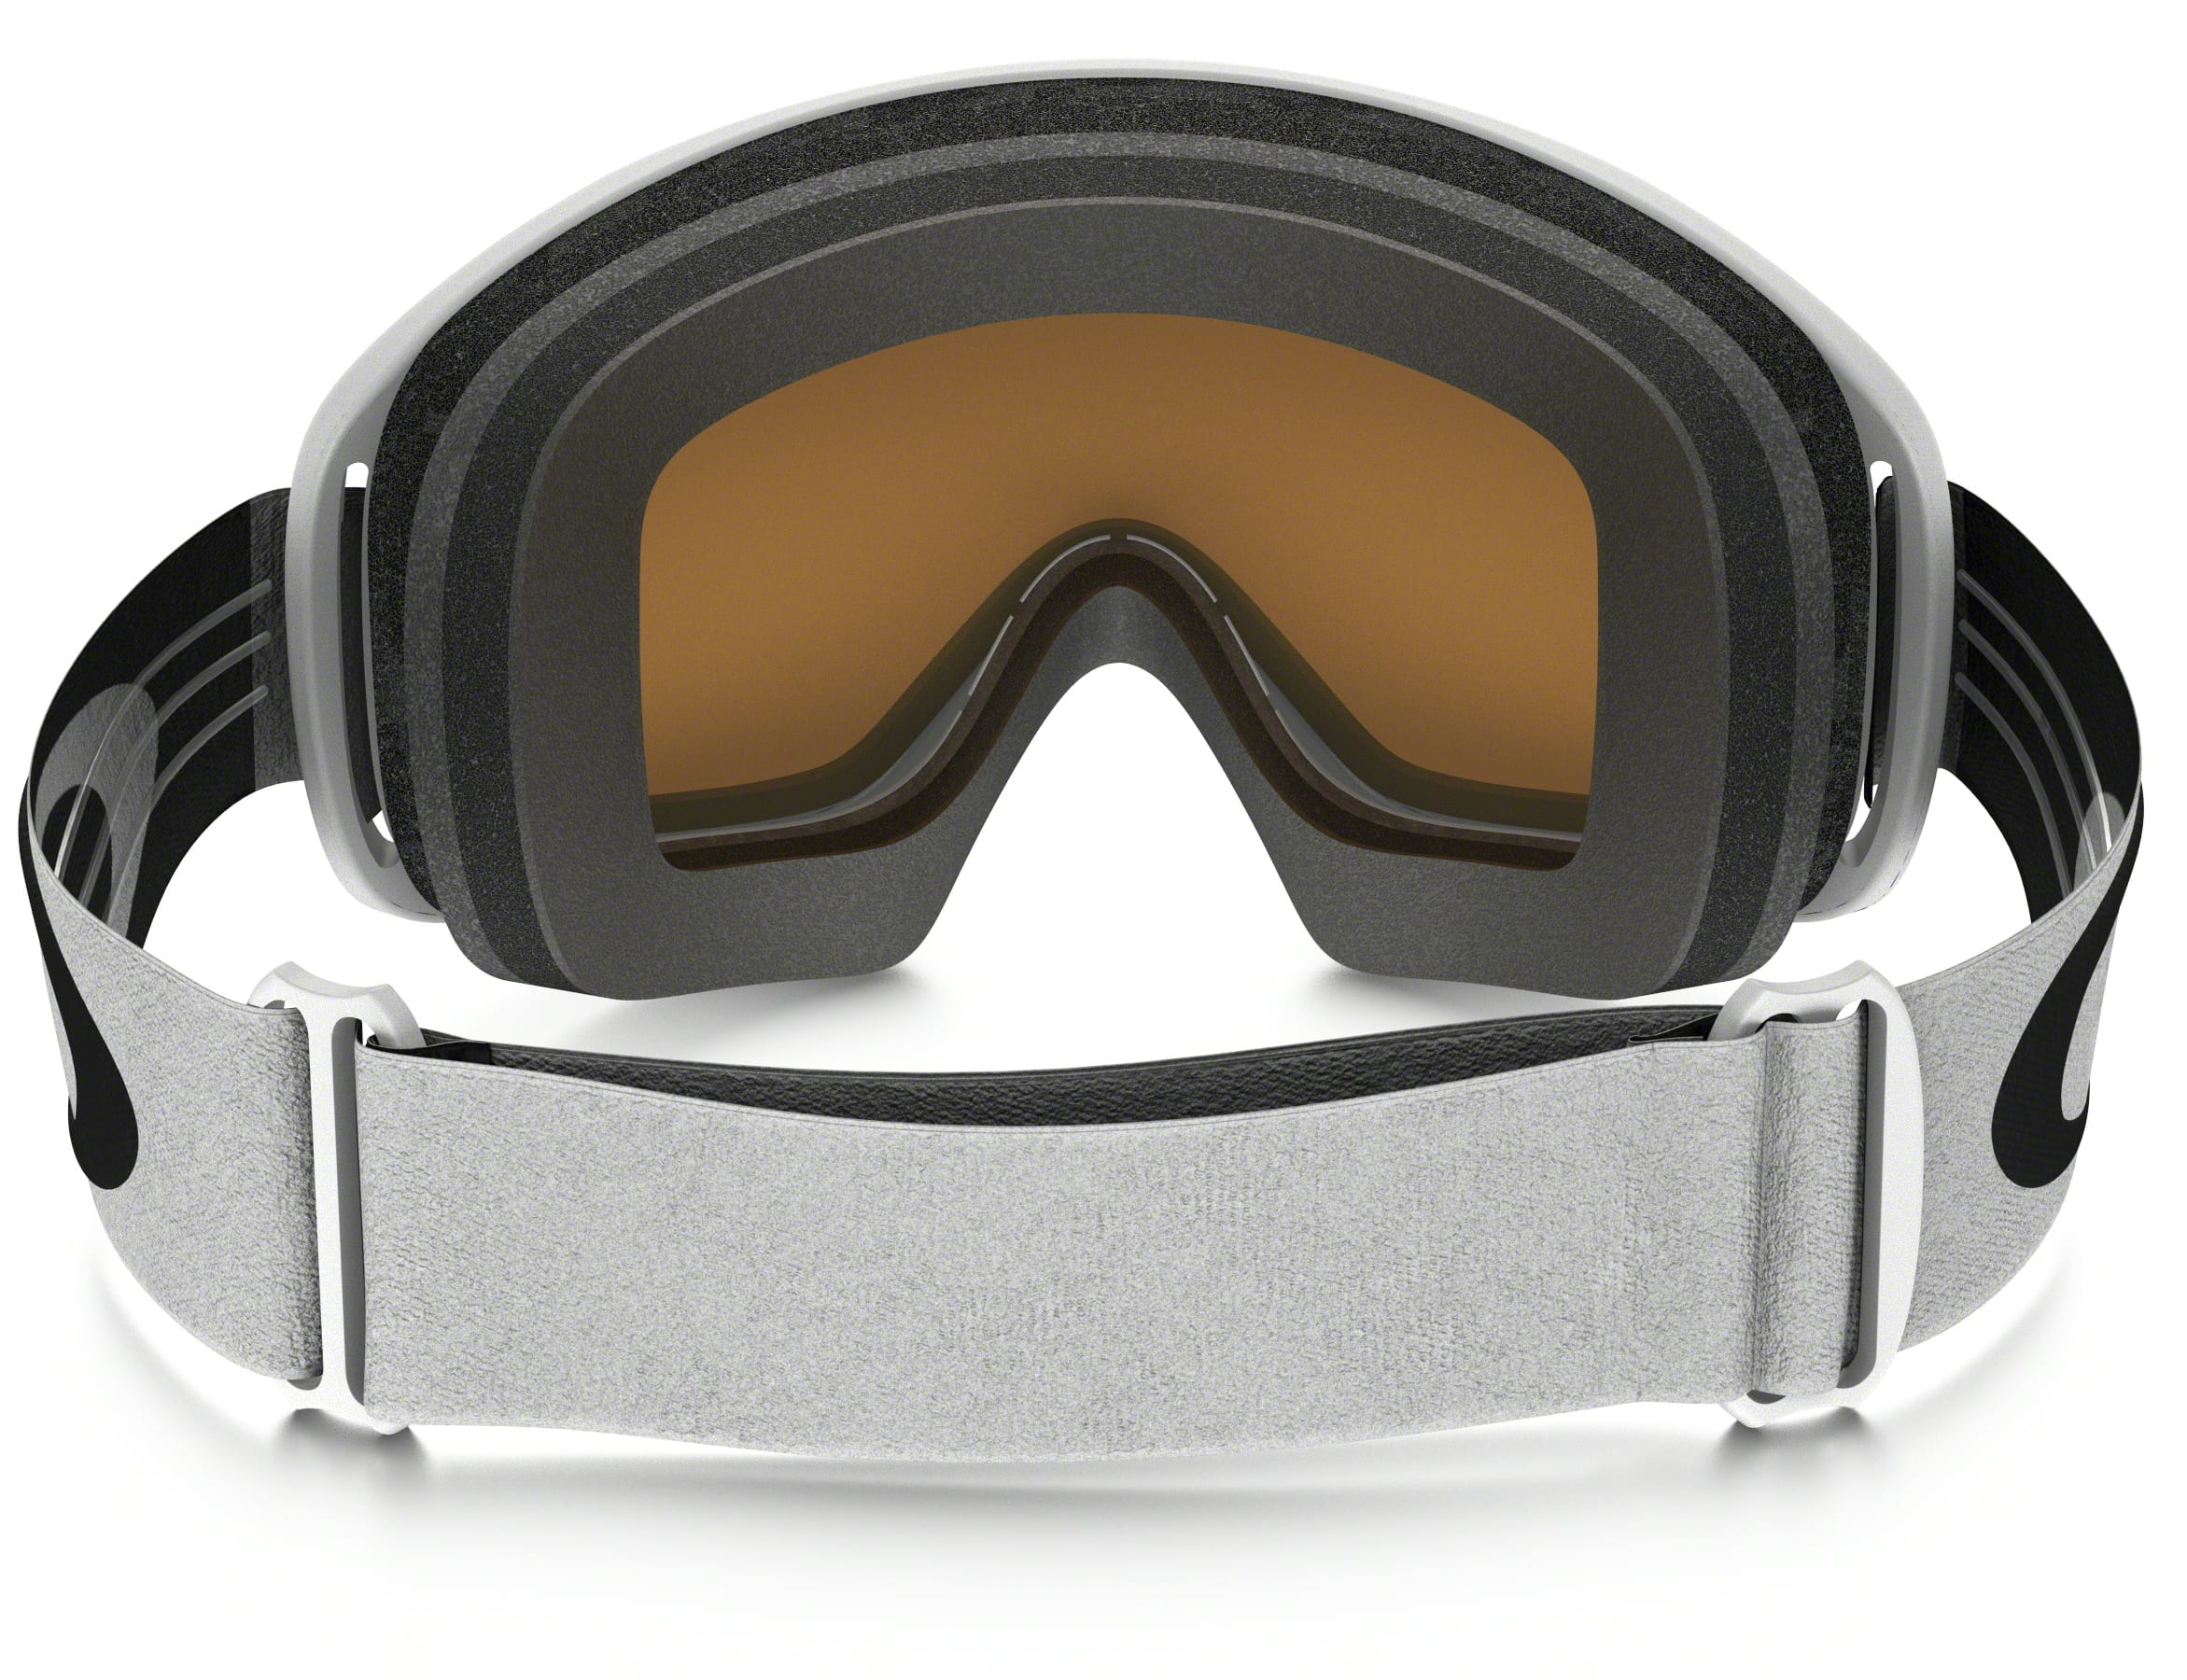 On Sale Oakley O Frame 2.0 XL (Asian Fit) Goggles up to 40% off